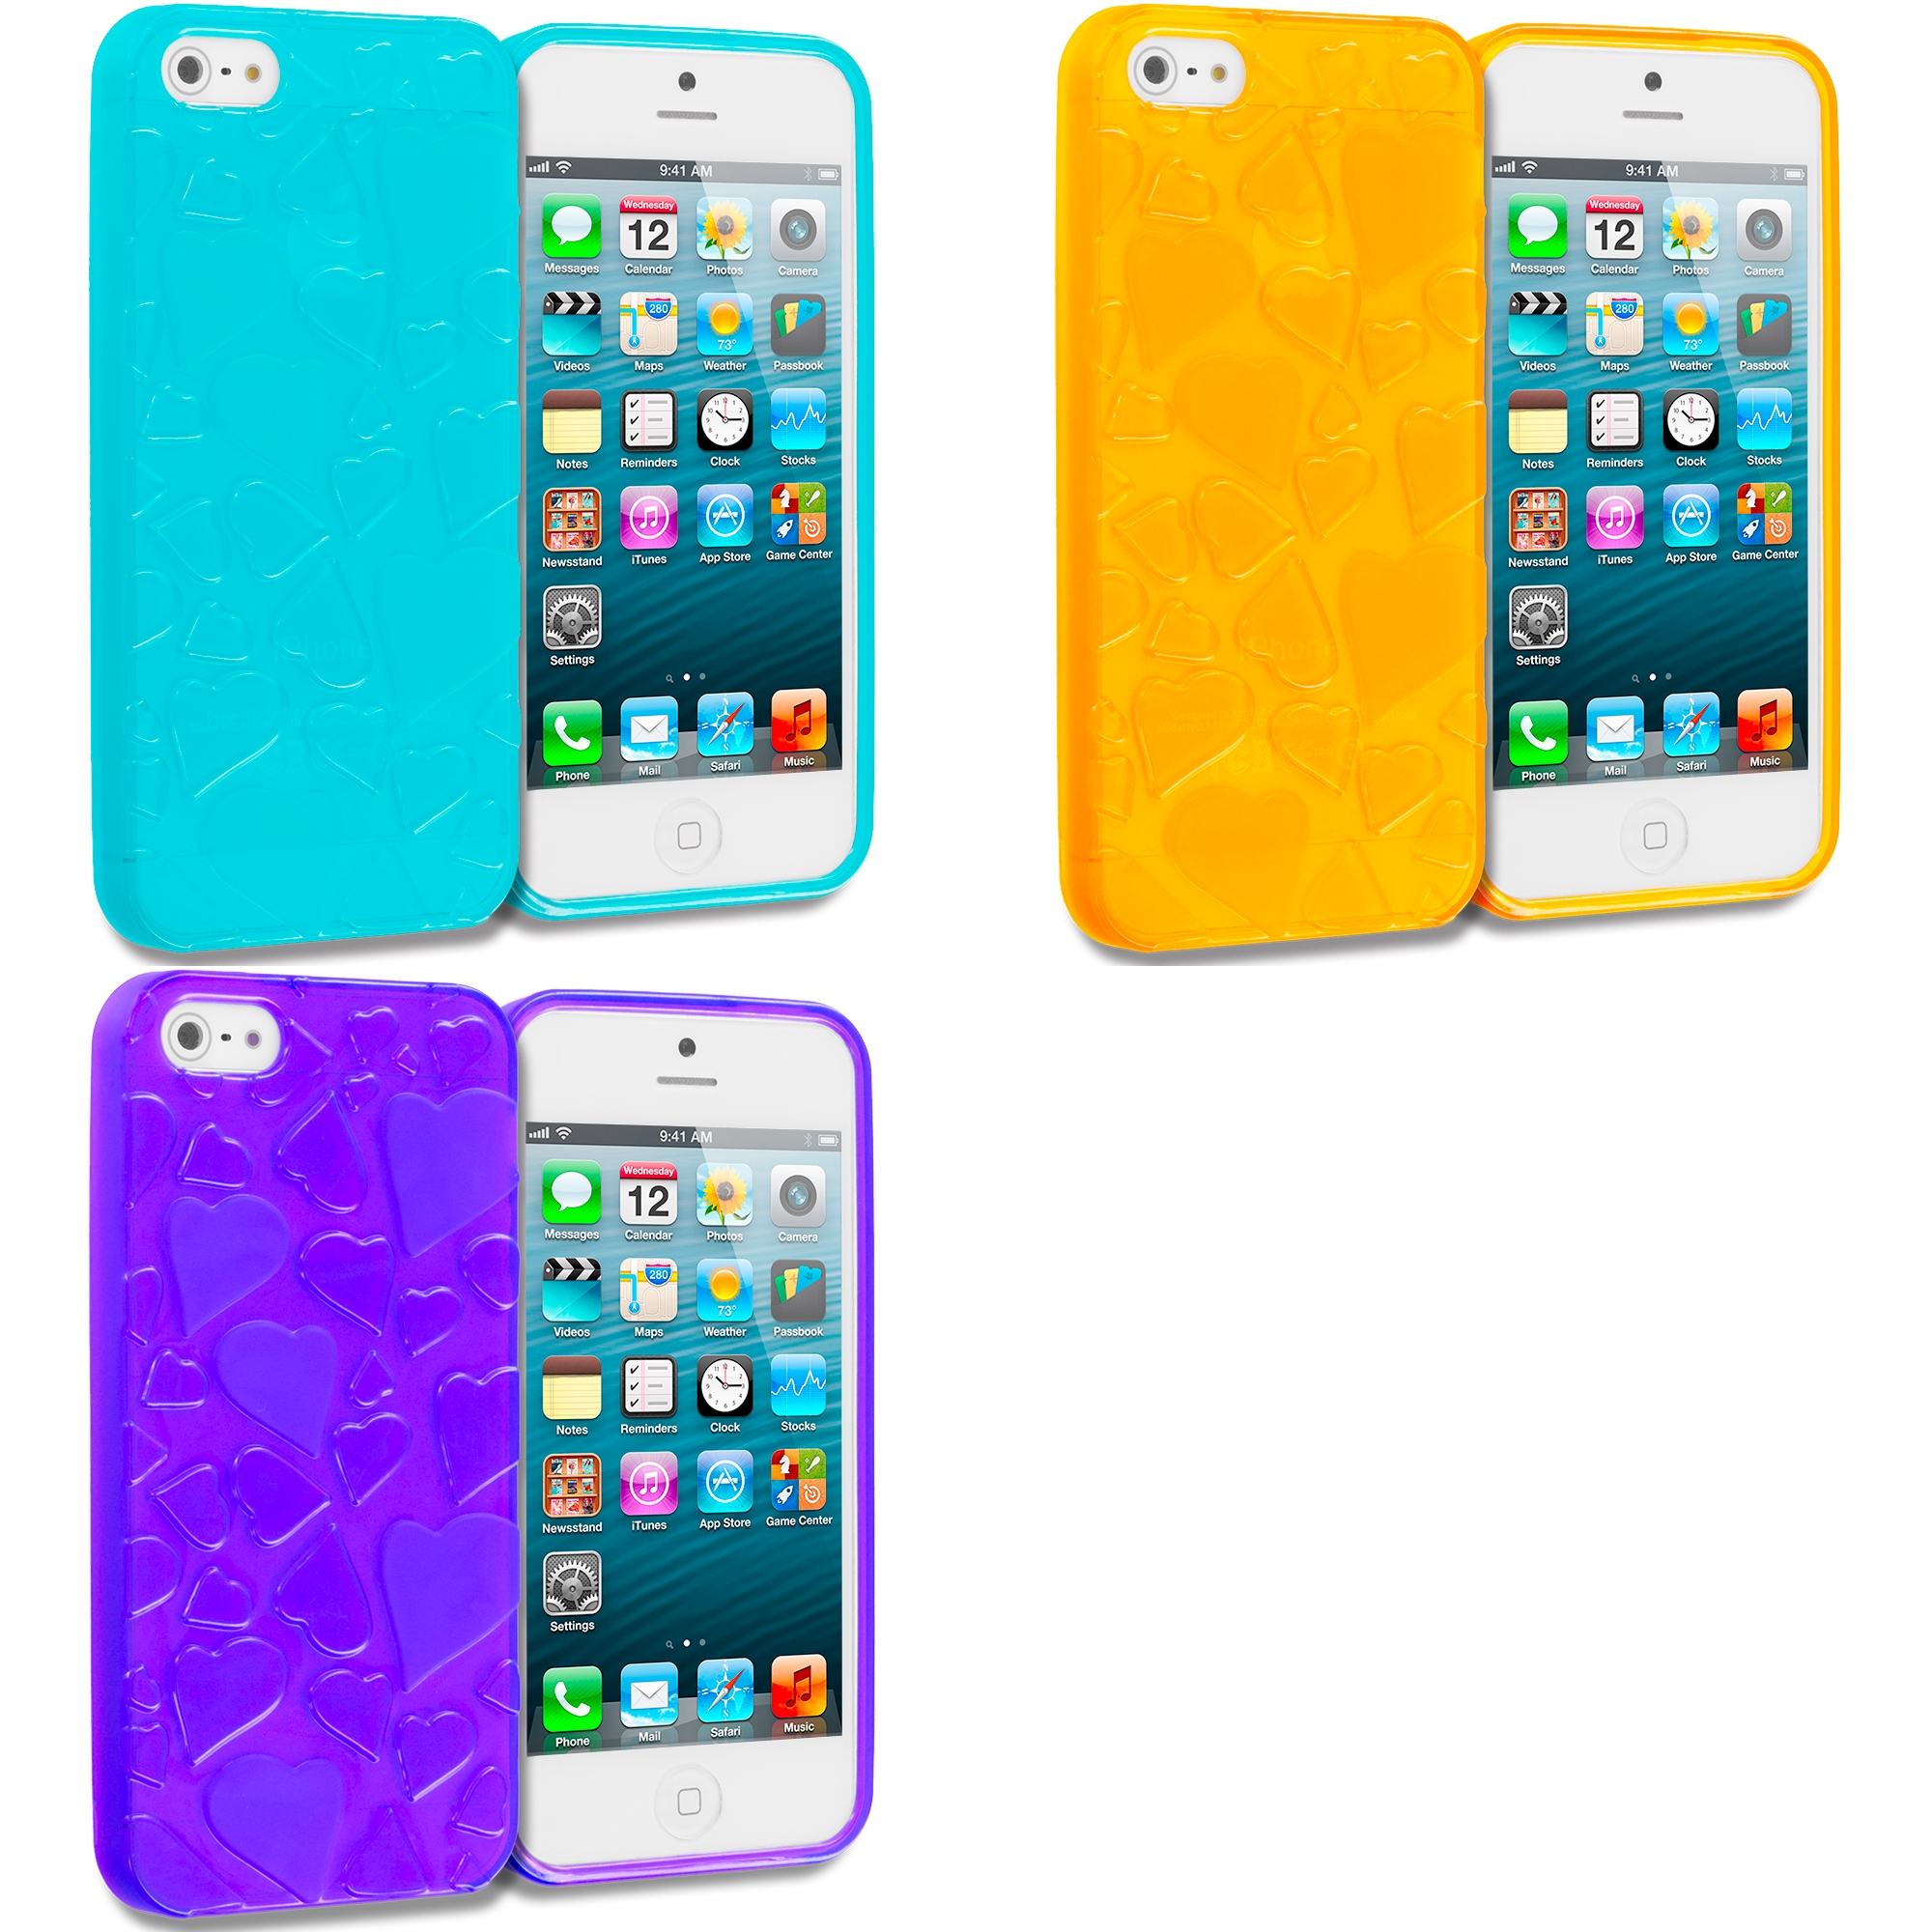 Apple iPhone 5/5S/SE Combo Pack : Blue Hearts TPU Rubber Skin Case Cover